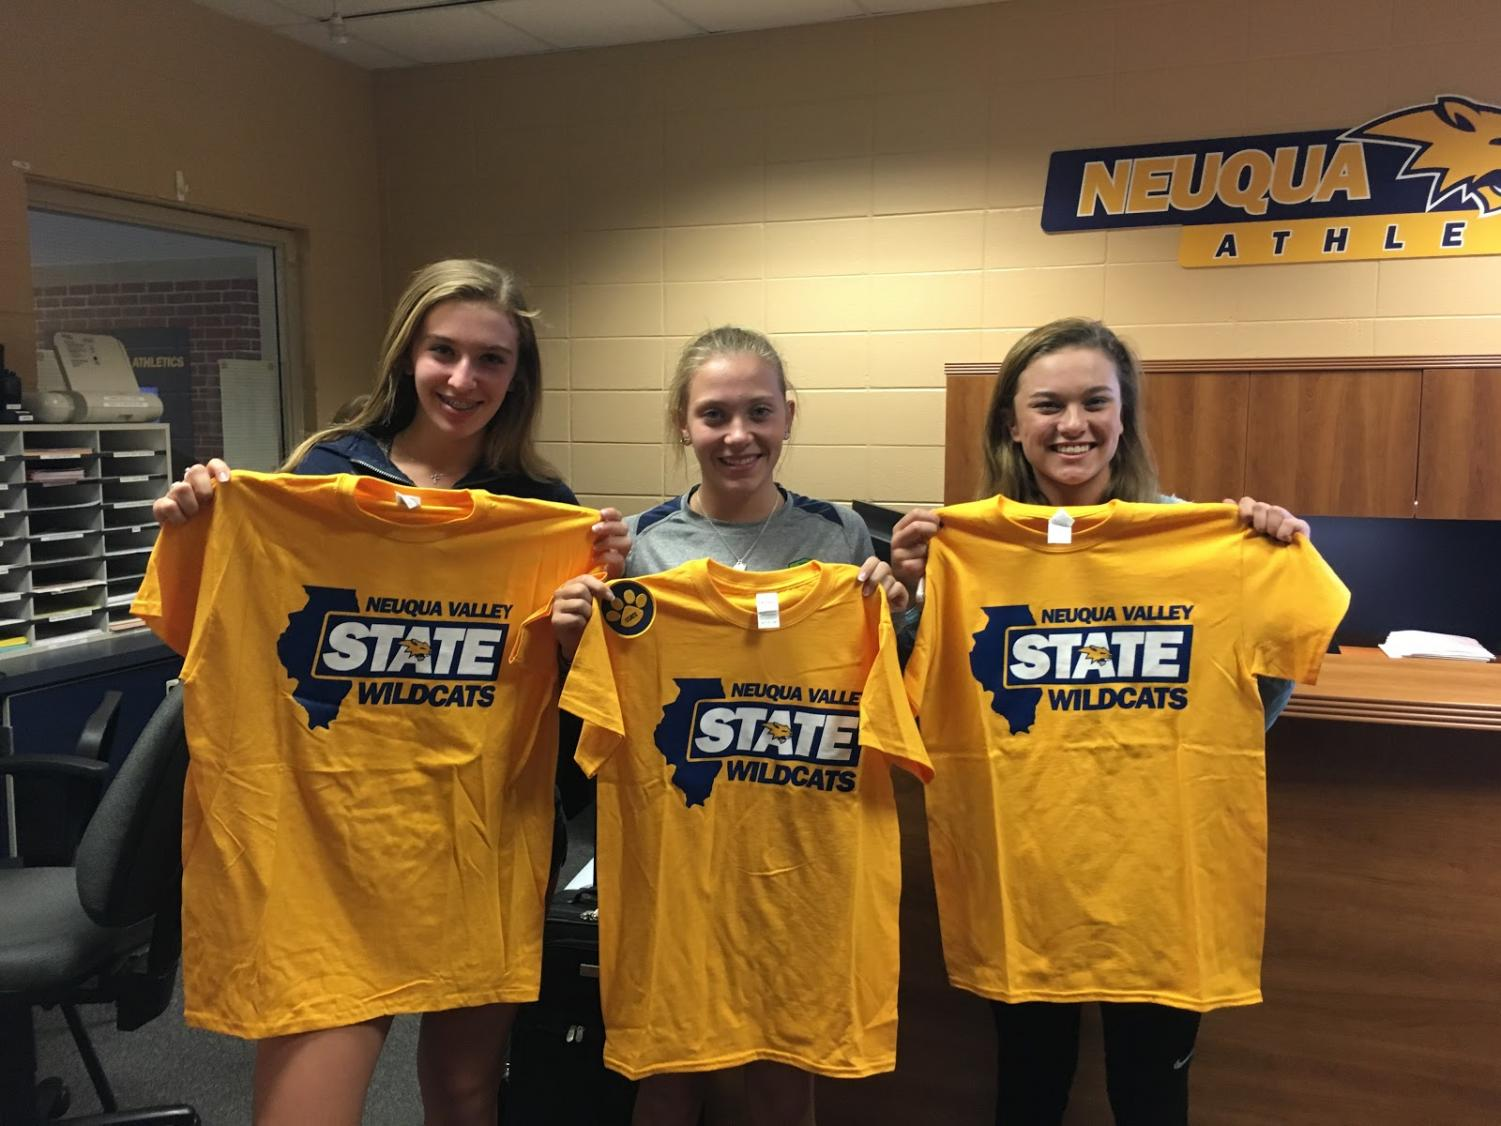 Listed from left to right: Hanna Beck, Hannah Neuman, and Jessica Chivini. The 2017 girls varsity tennis players receiving their shirts before heading to state. Chivini is the only one of the three players who trains at Acceleration, while Beck and Neuman opted to not take part in the program and were still able to secure a spot at state. Photo courtesy of Jessica Chivini.